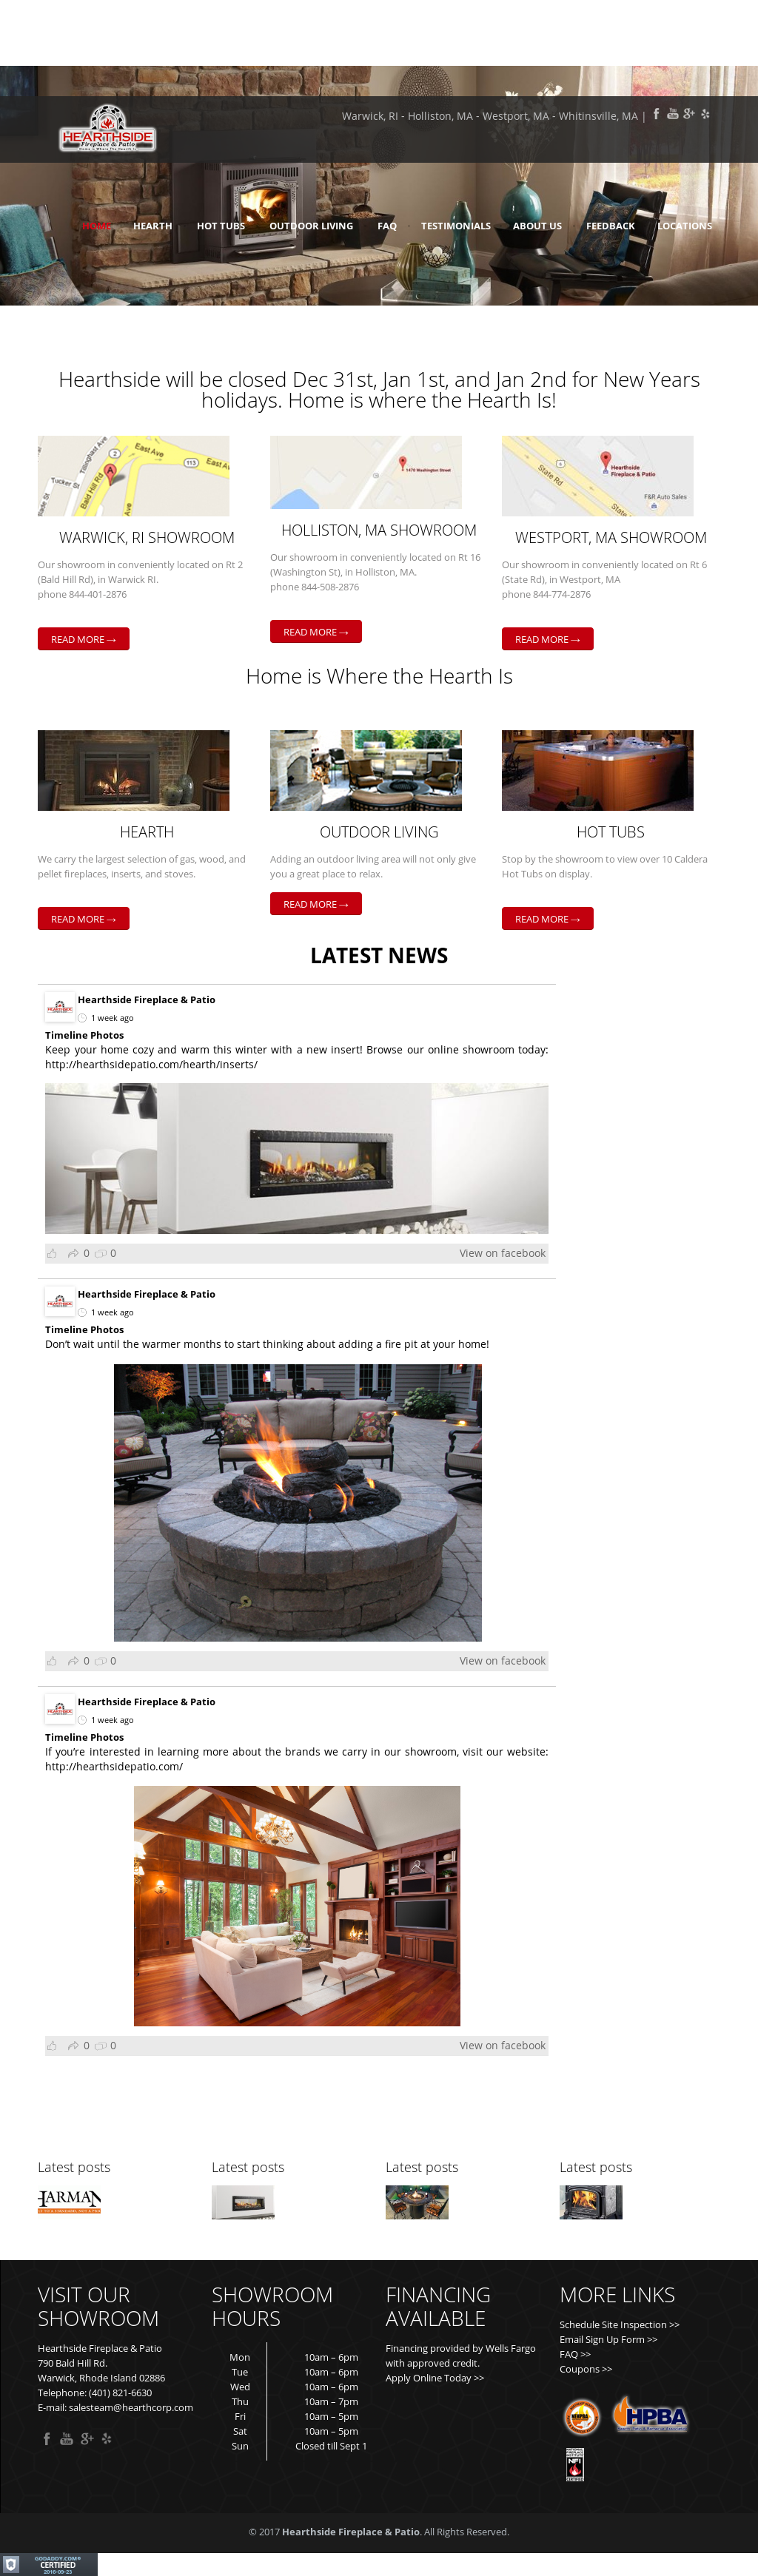 Hearthside Fireplace U0026 Patio Competitors, Revenue And Employees   Owler  Company Profile